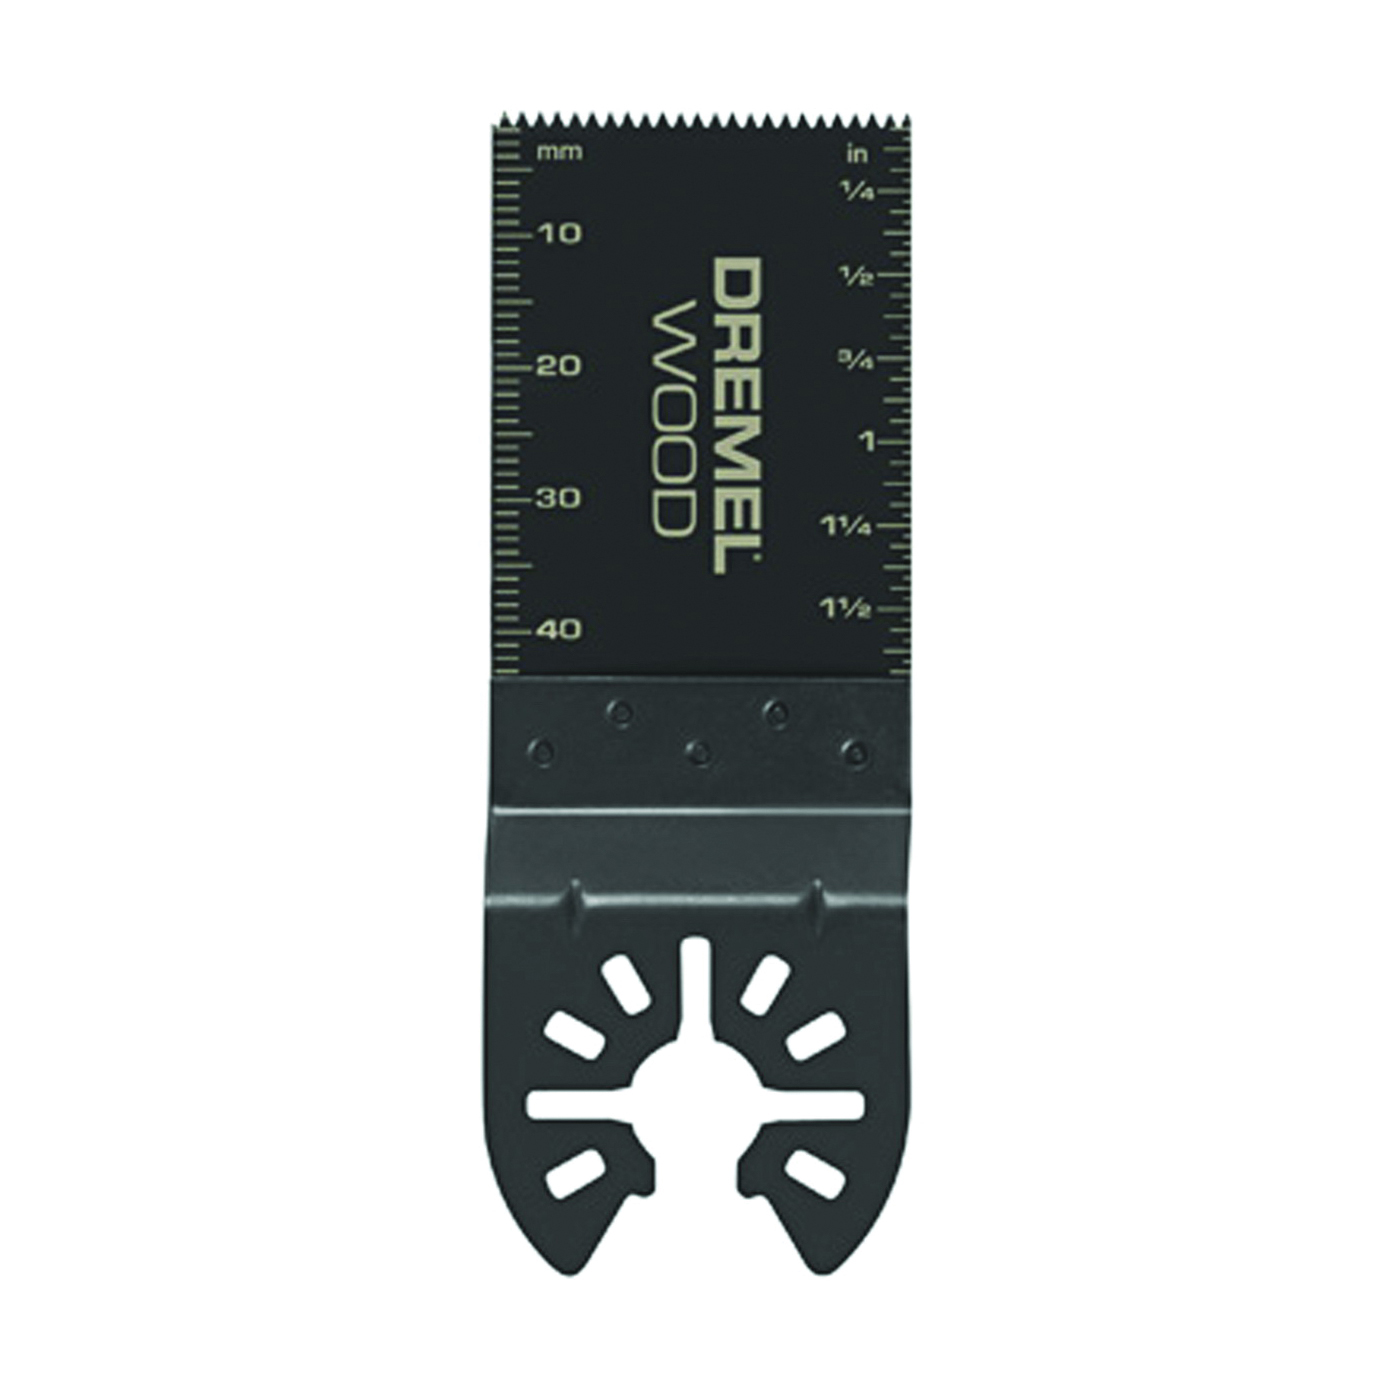 Picture of DREMEL MM480 Oscillating Blade, 1-5/8 in D Cutting, HCS